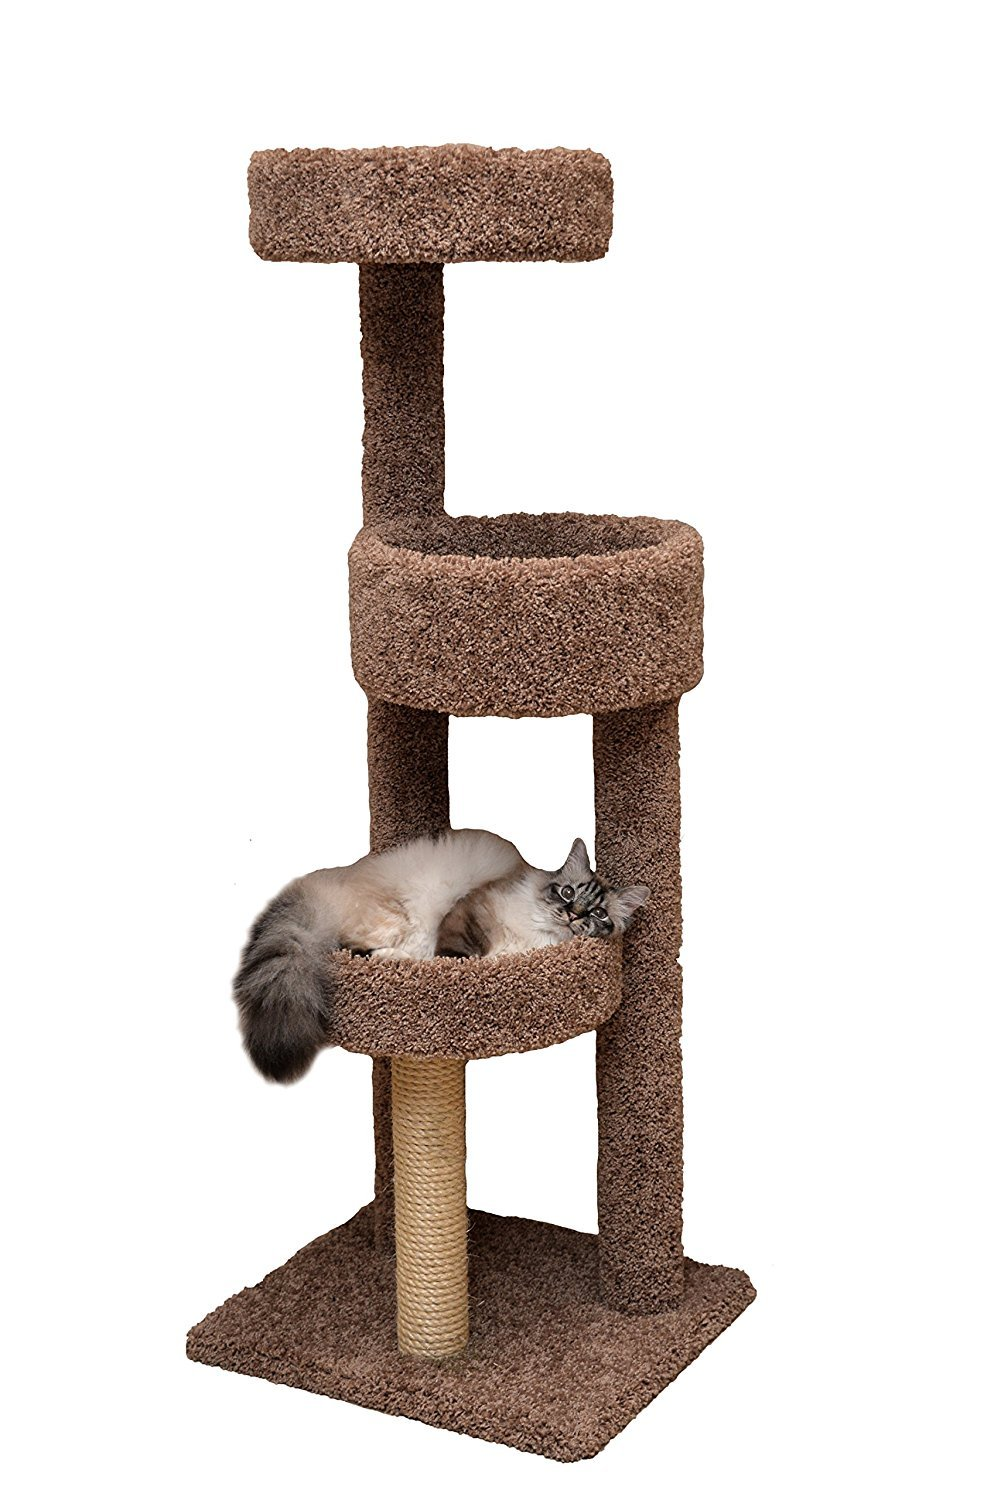 Miller's Cats 1010 Rest Stop Cat Furniture with 3 Plush Carpeted Platforms, Brown, 60''